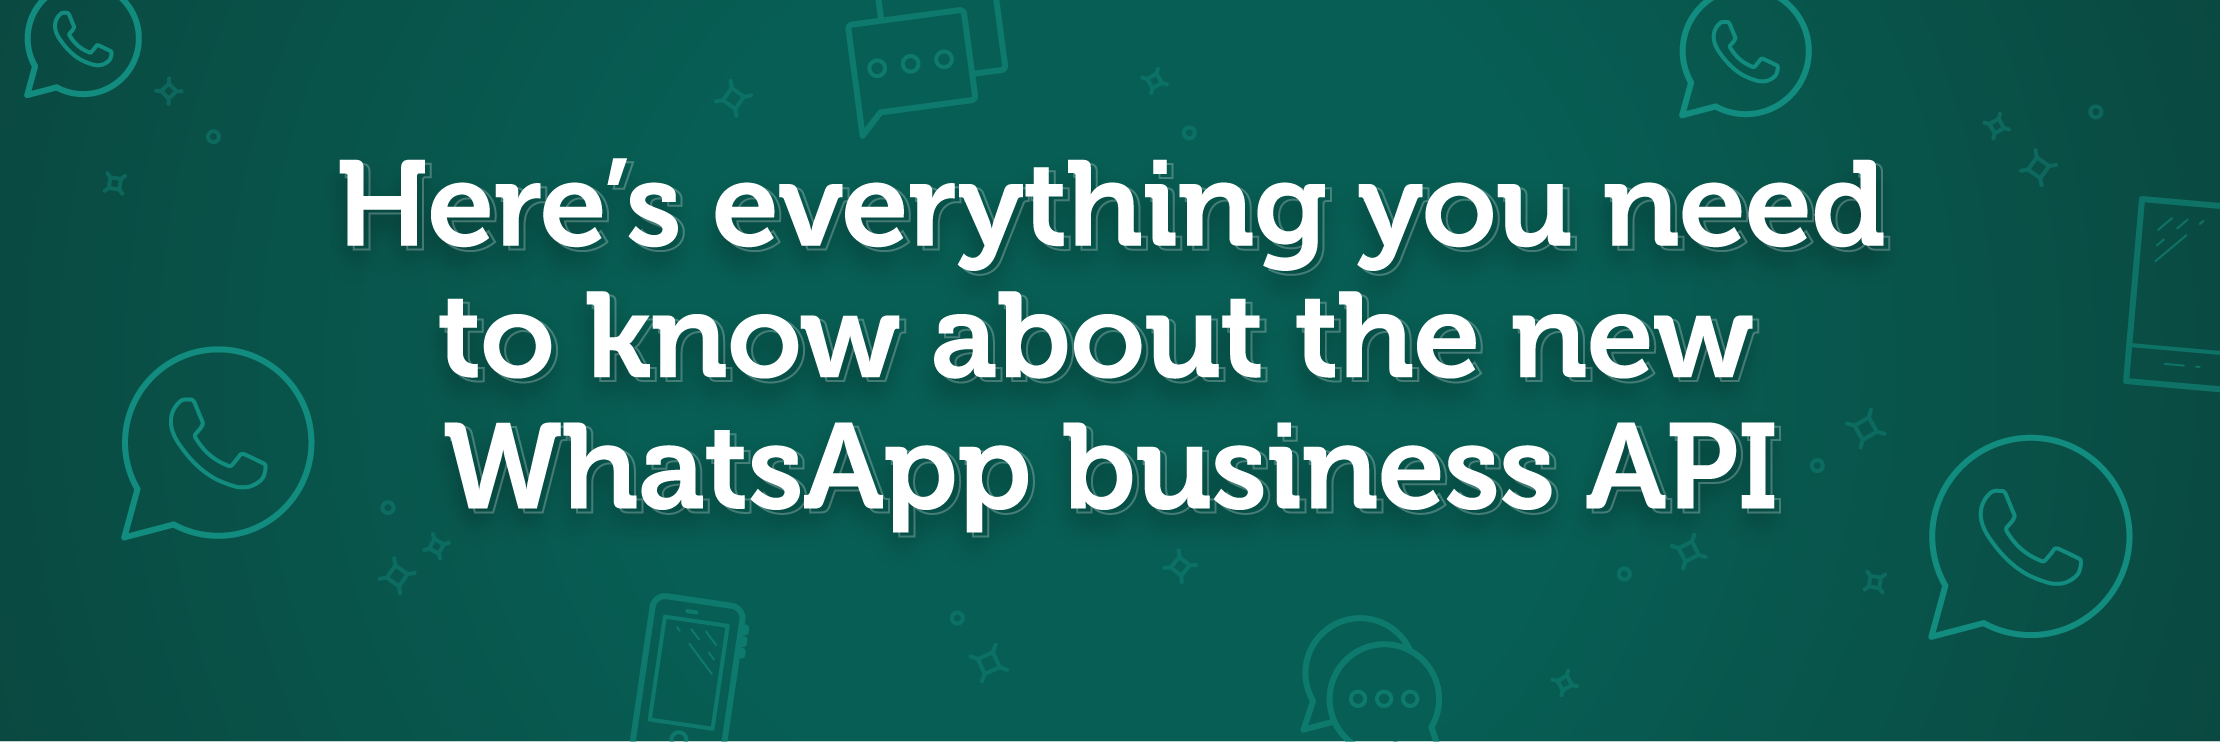 All you need to know about the new WhatsApp business API